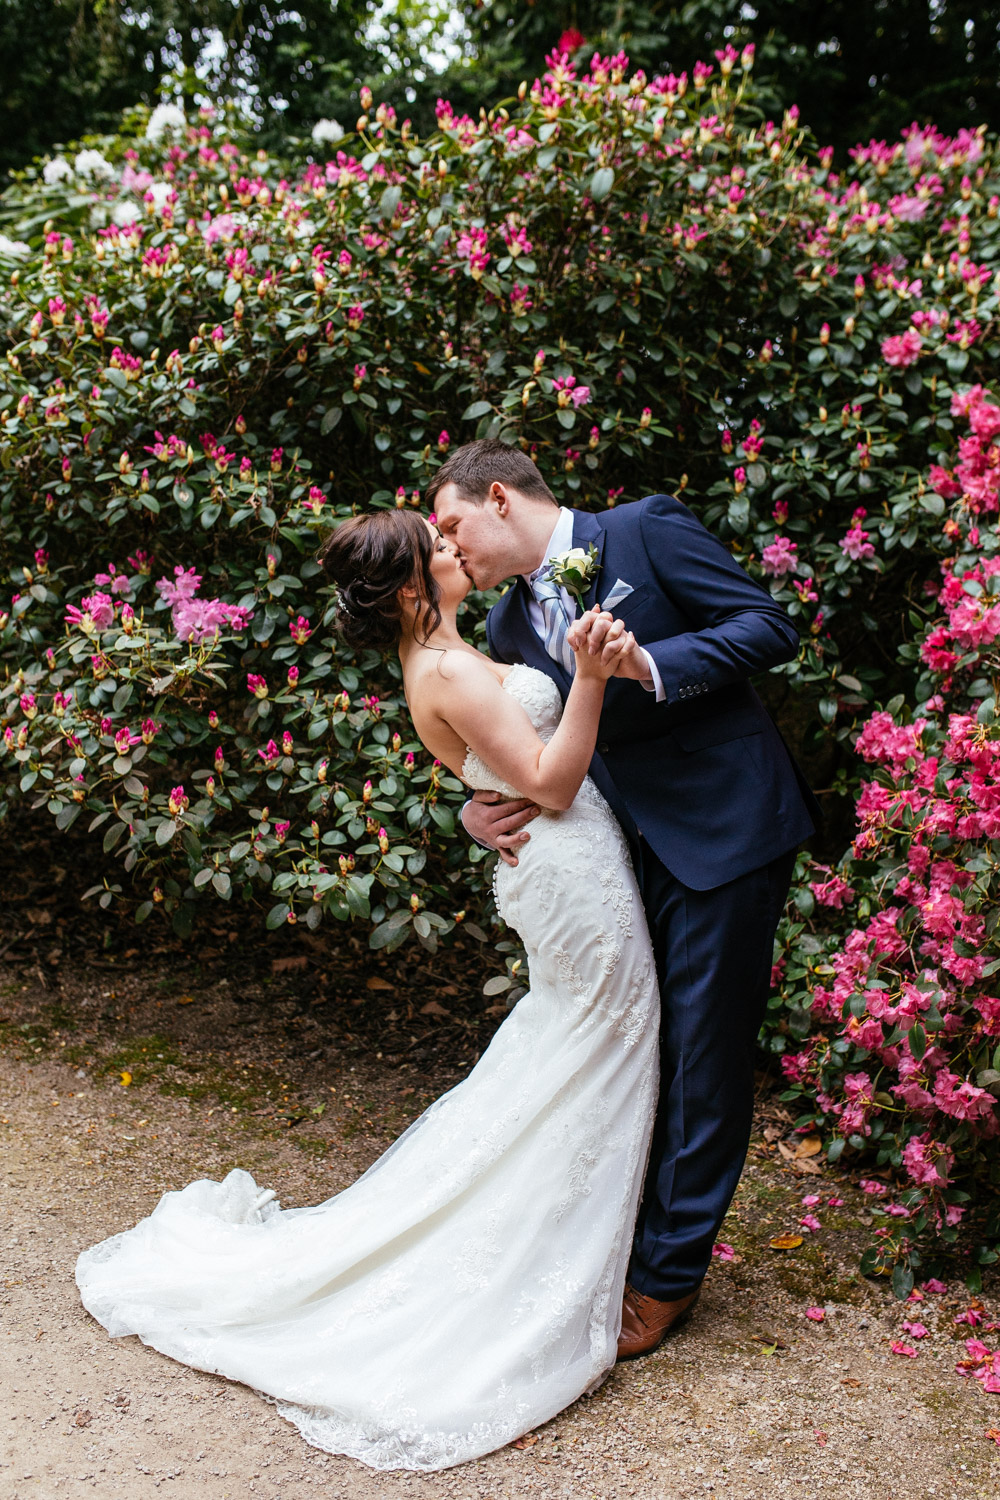 Becky-and-Jordan-Wedding-Highlights-58.jpg